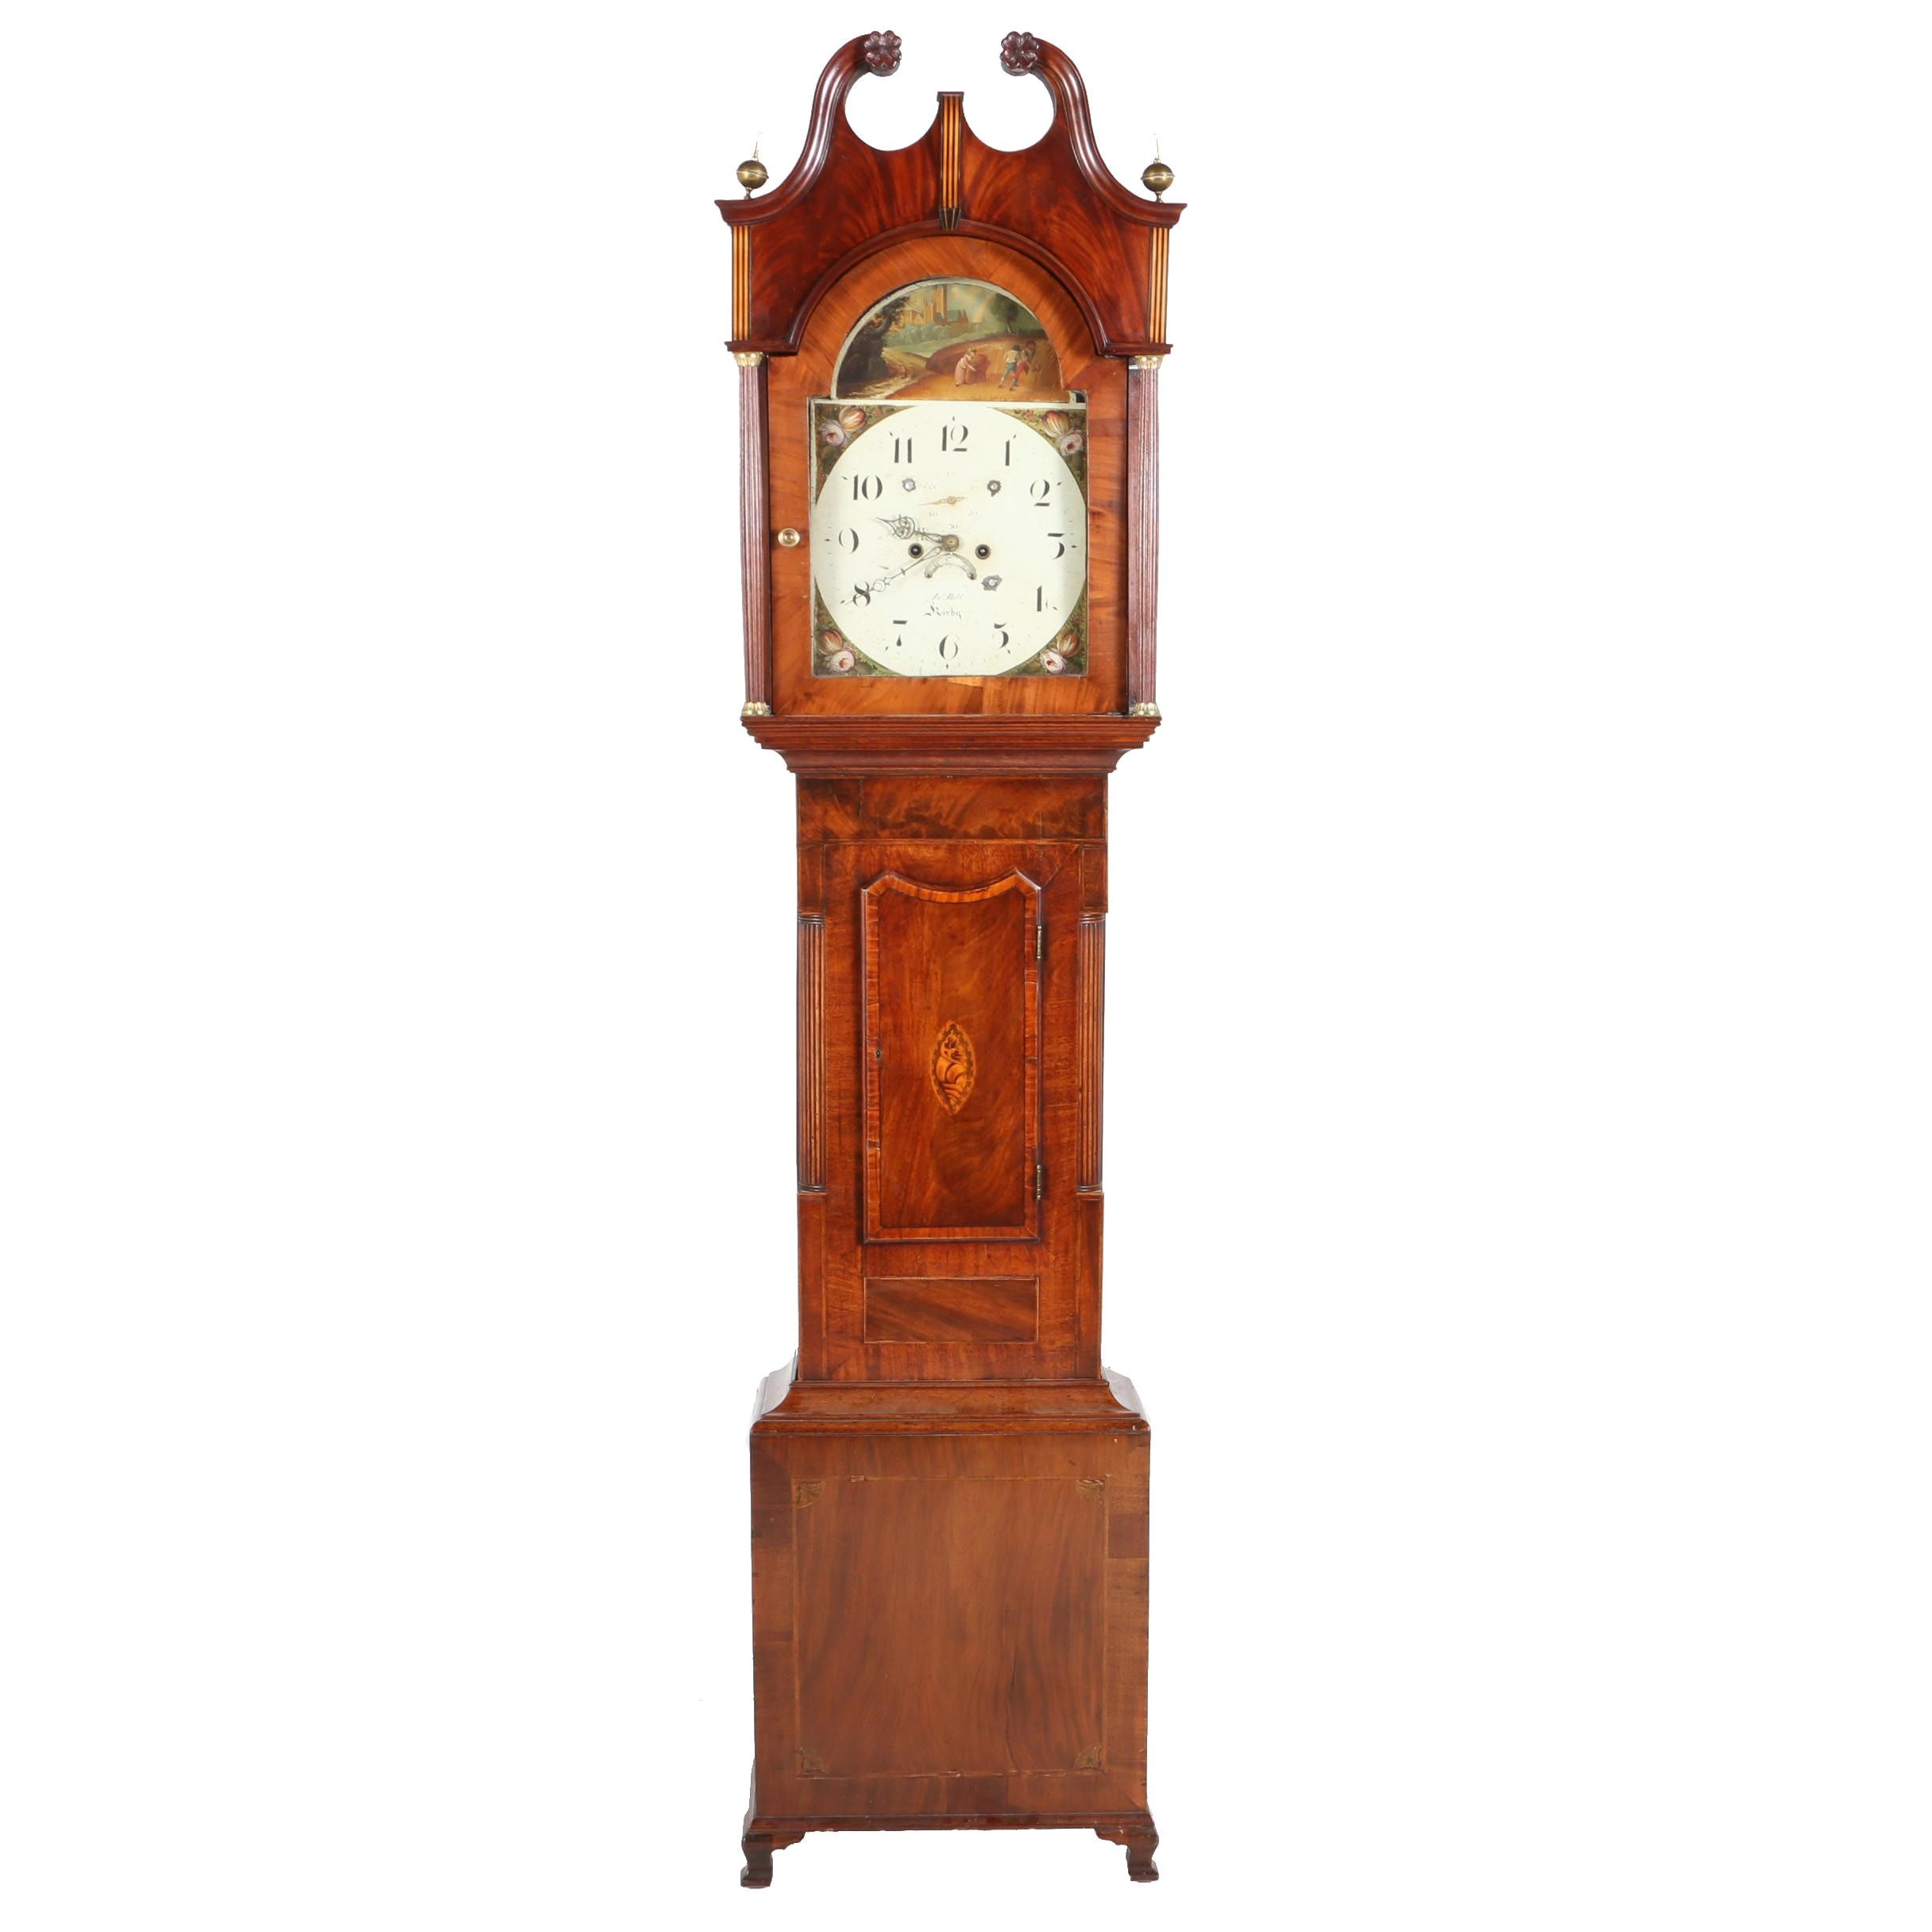 Mahogany and Marquetry Tall Case Clock, John Bell Kirby, 19th Century